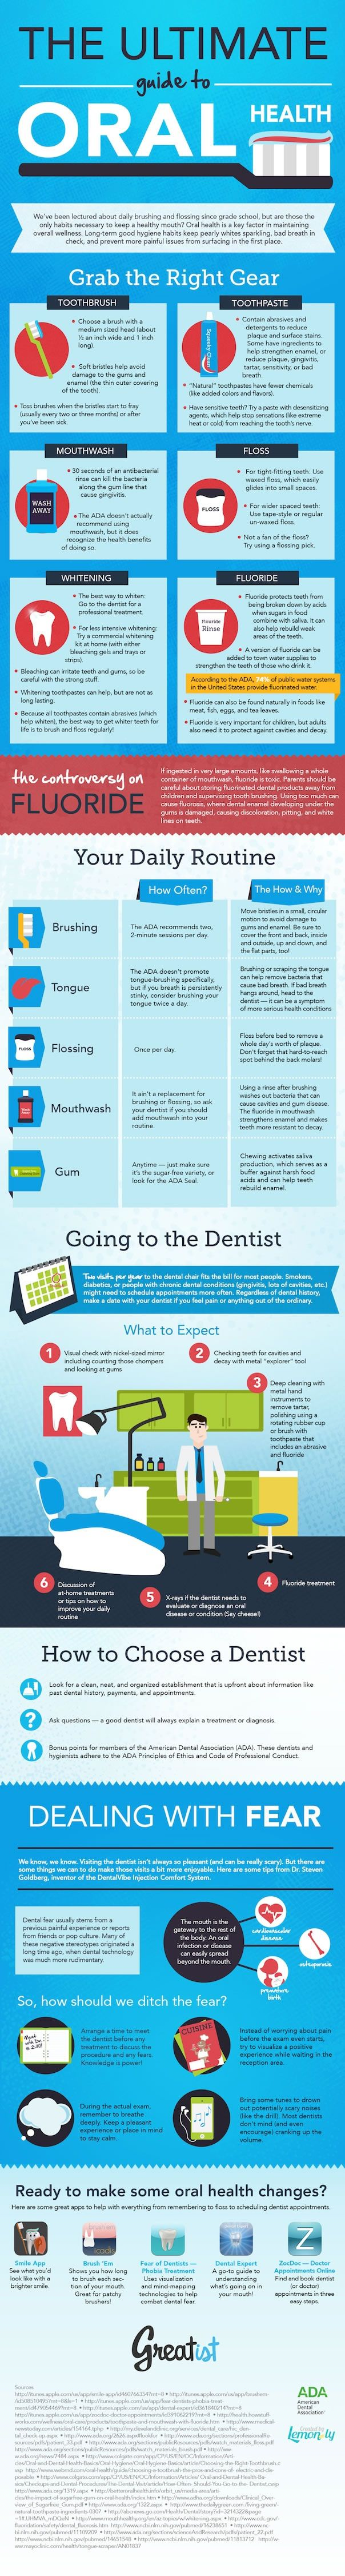 Infographic: The Ultimate Guide to Oral Health